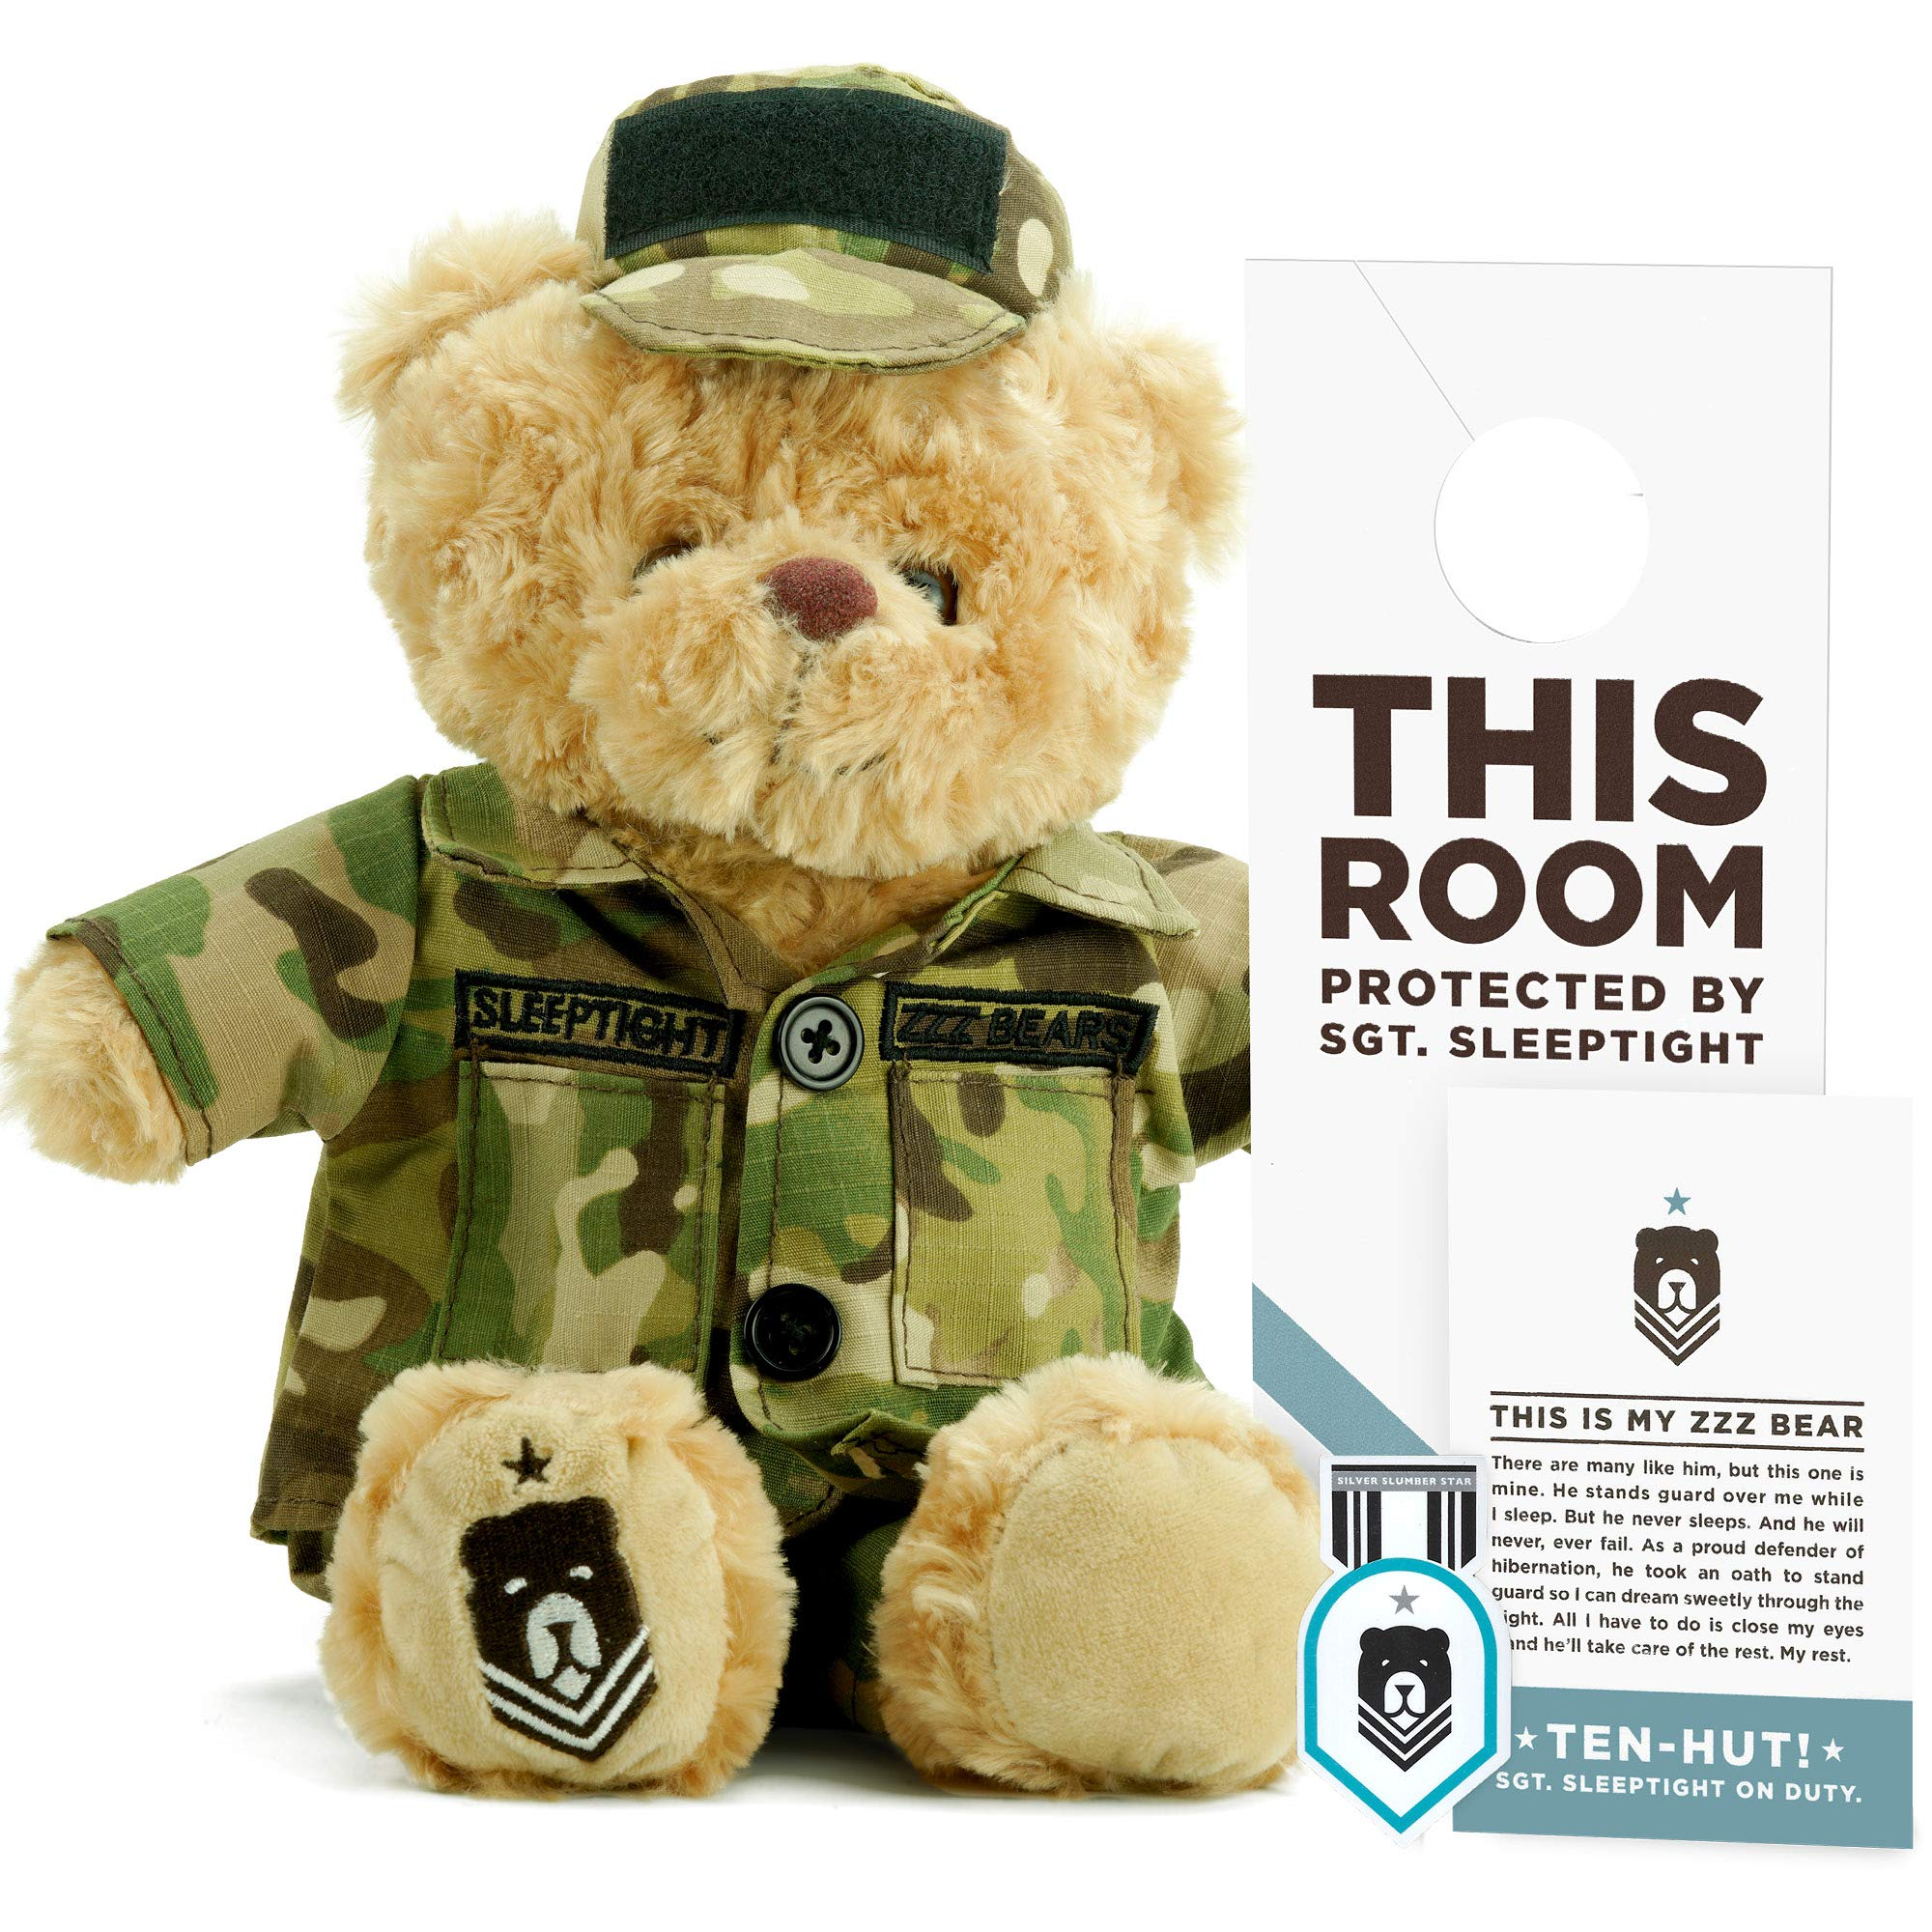 ZZZ Bears SGT. Sleeptight Army Teddy Bear - Military Plush Toy, Four Step Sleep System to Help with Bedtime (Army Camouflage) by ZZZ Bears